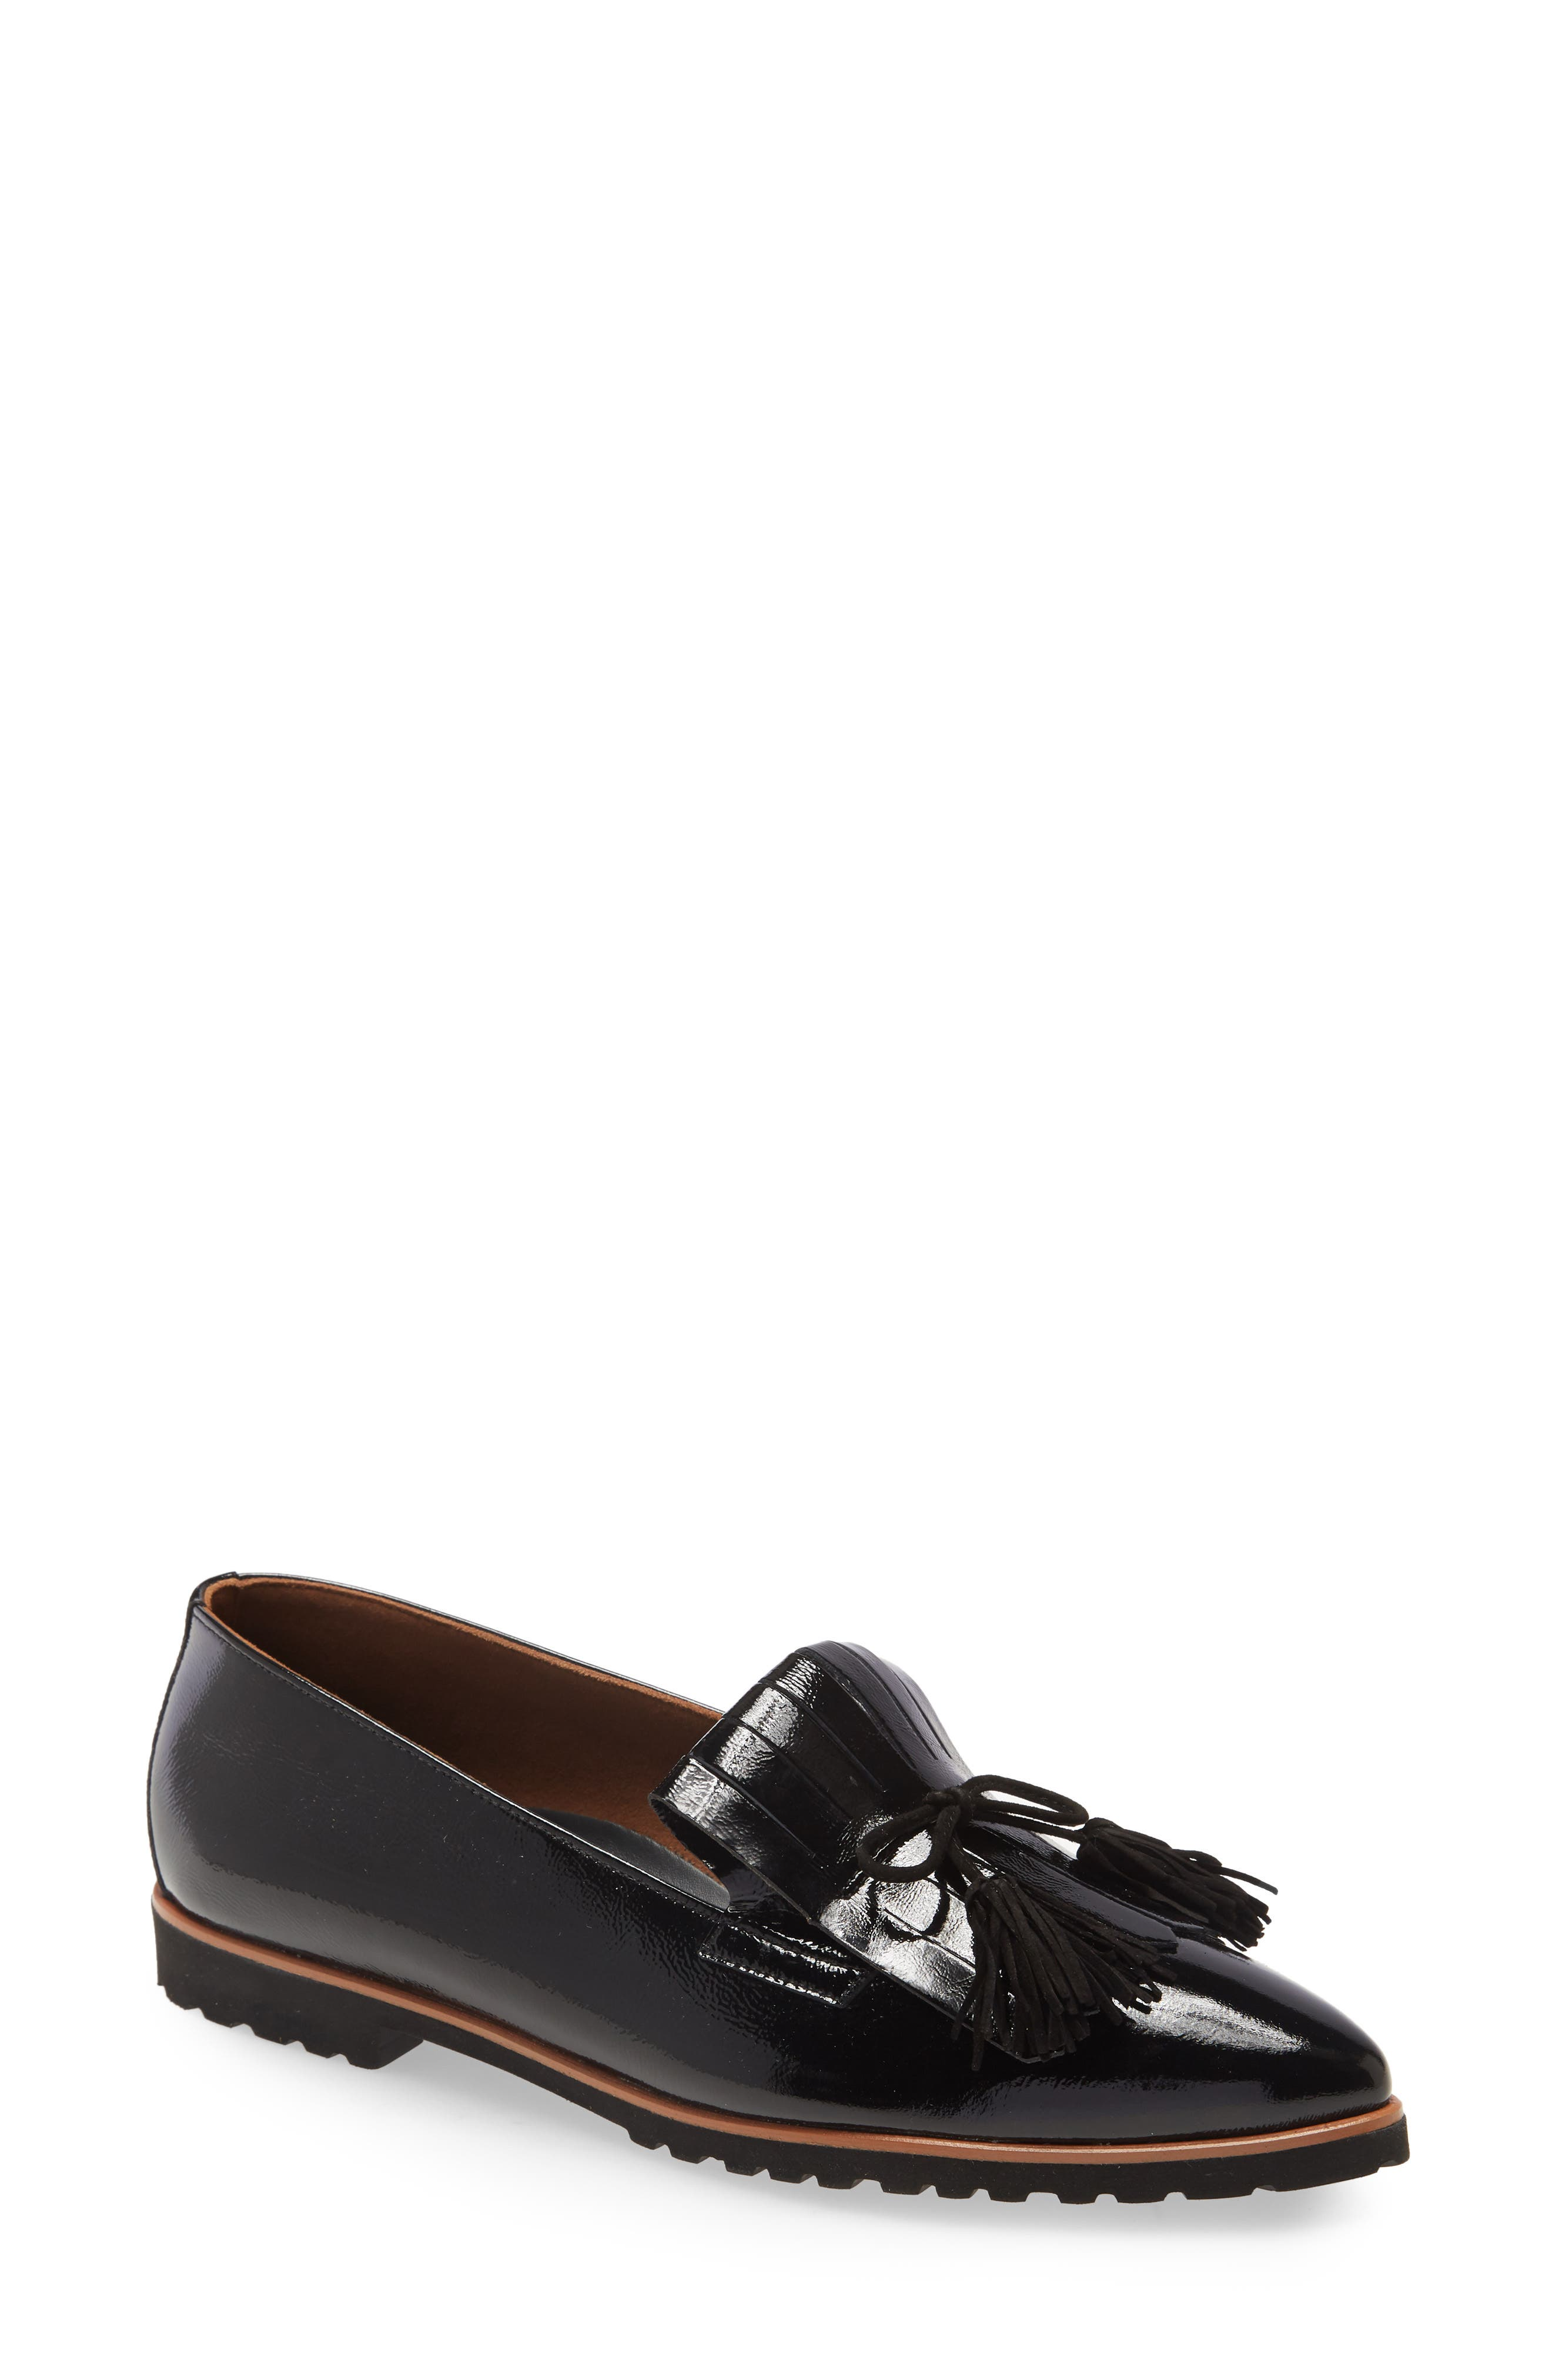 Paul Green Carrie Loafer